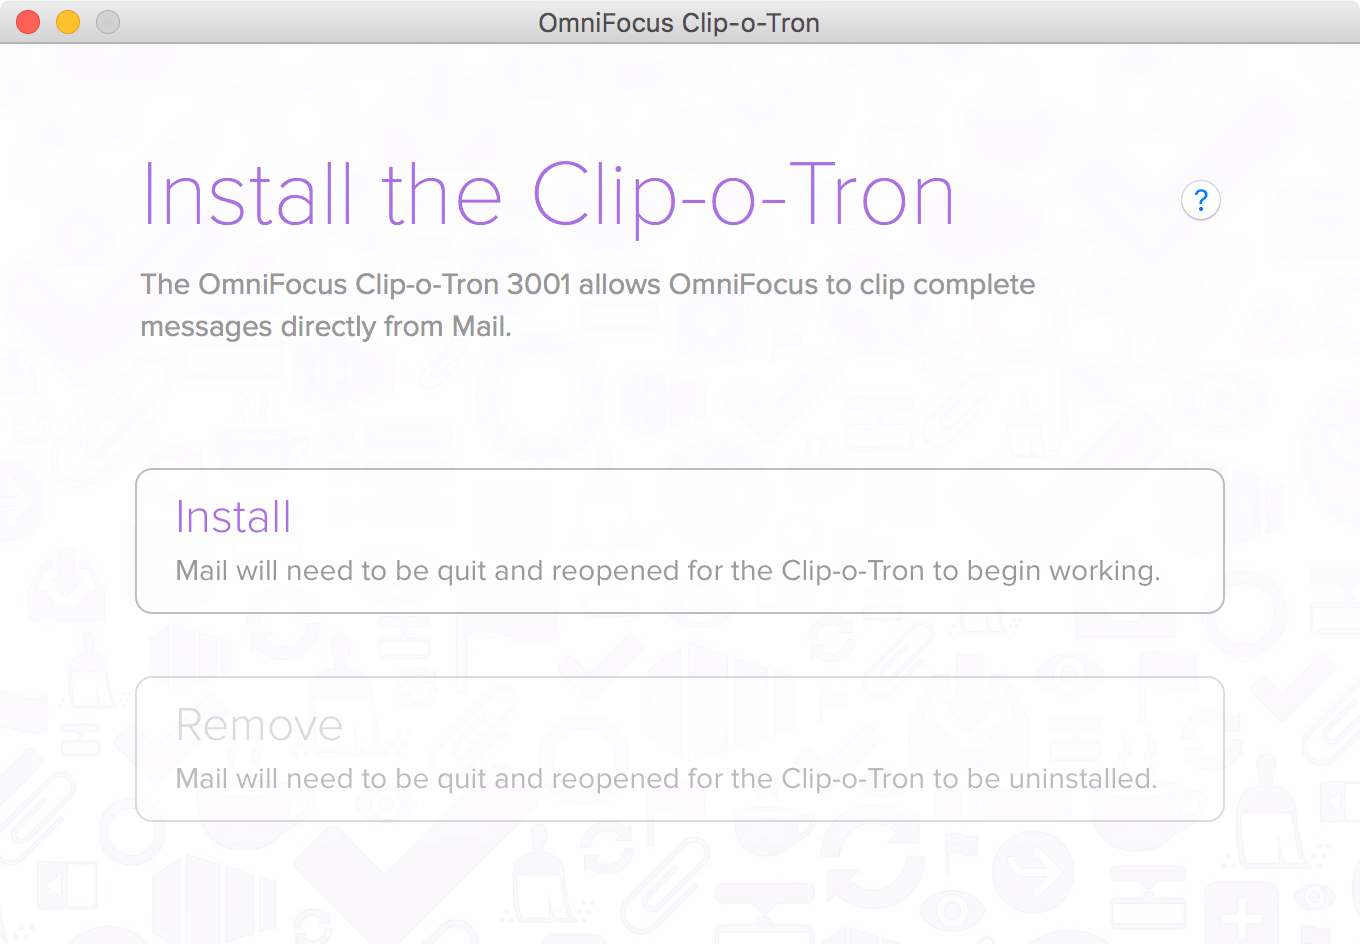 Clipping from Apple Mail using the OmniFocus Clip-o-Tron